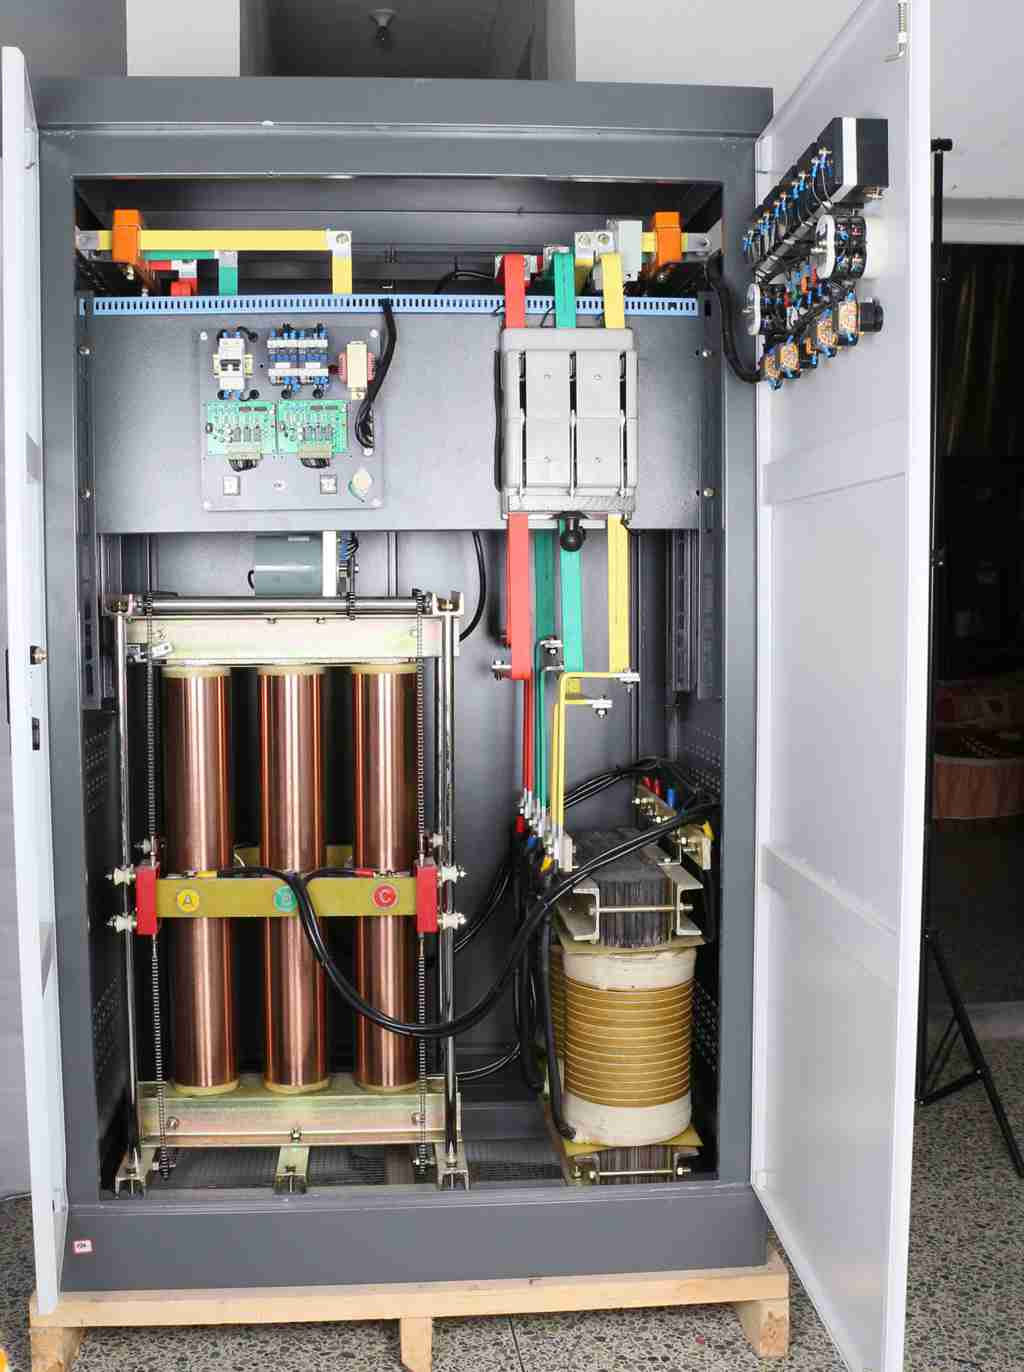 Pressure regulator voltage stabilizer information